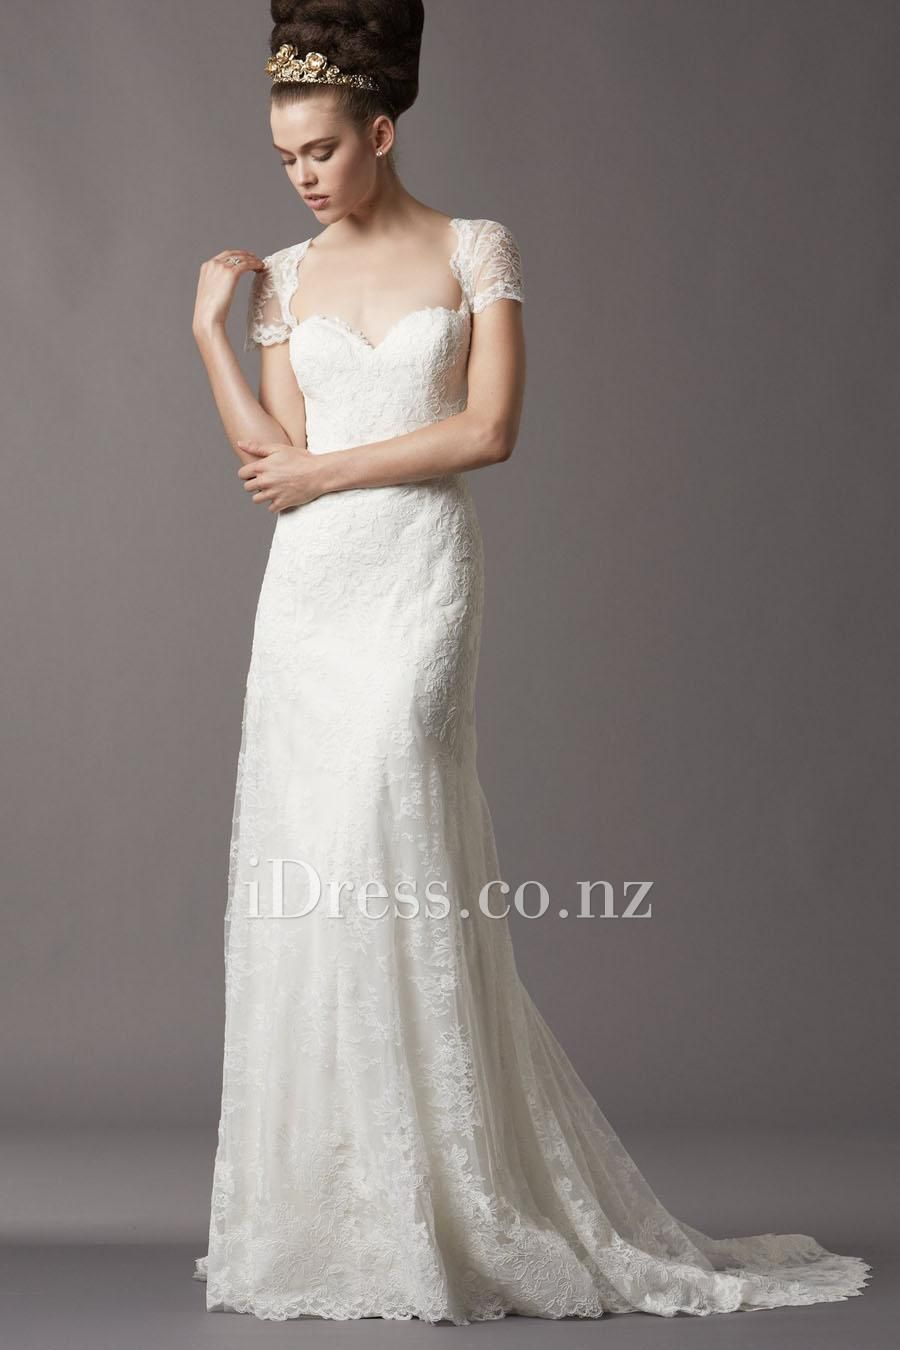 Short lace wedding dress with sleeves  embroidered lace short sleeves wedding dress witth chapel train